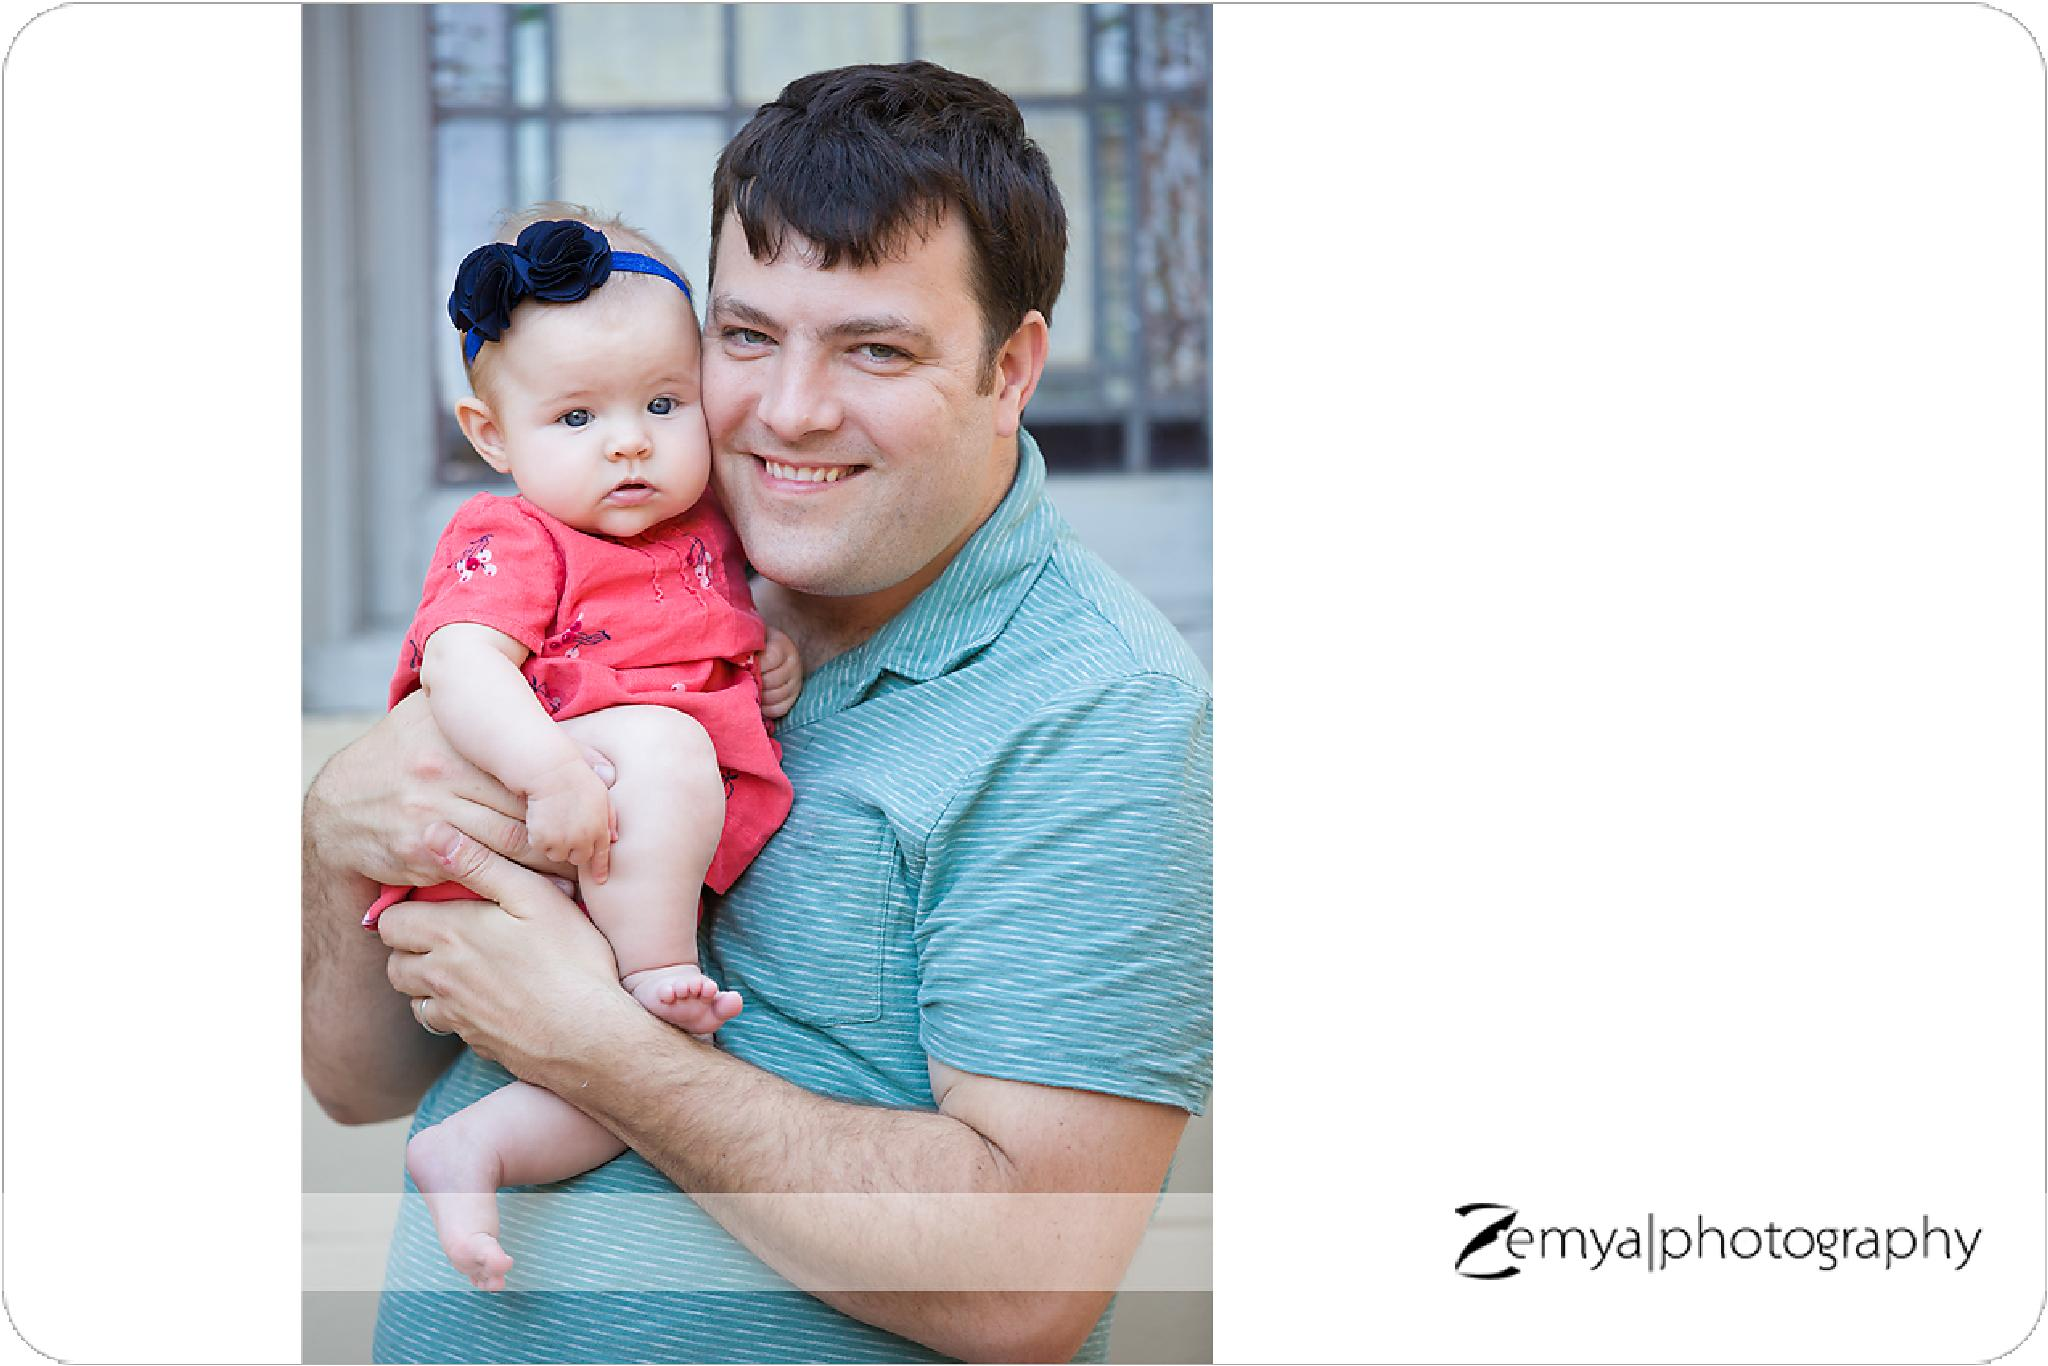 Belmont family photography by Zemya Photography